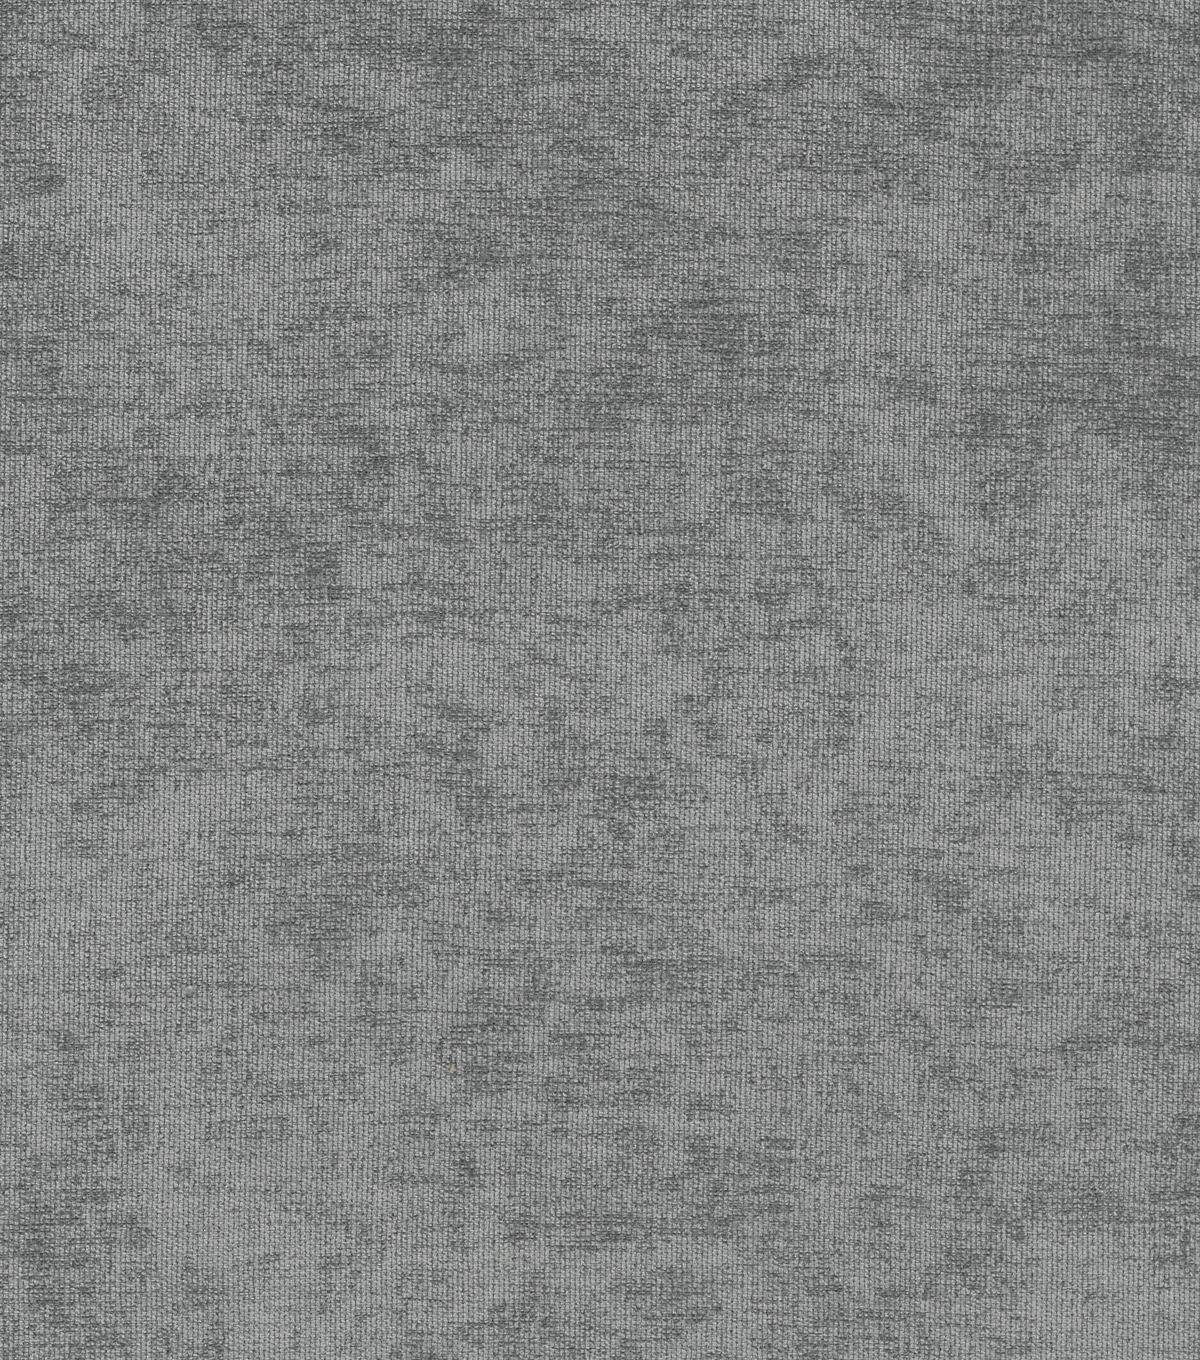 Home Decor 8\u0022x8\u0022 Fabric Swatch-Crypton Shelby Pelican